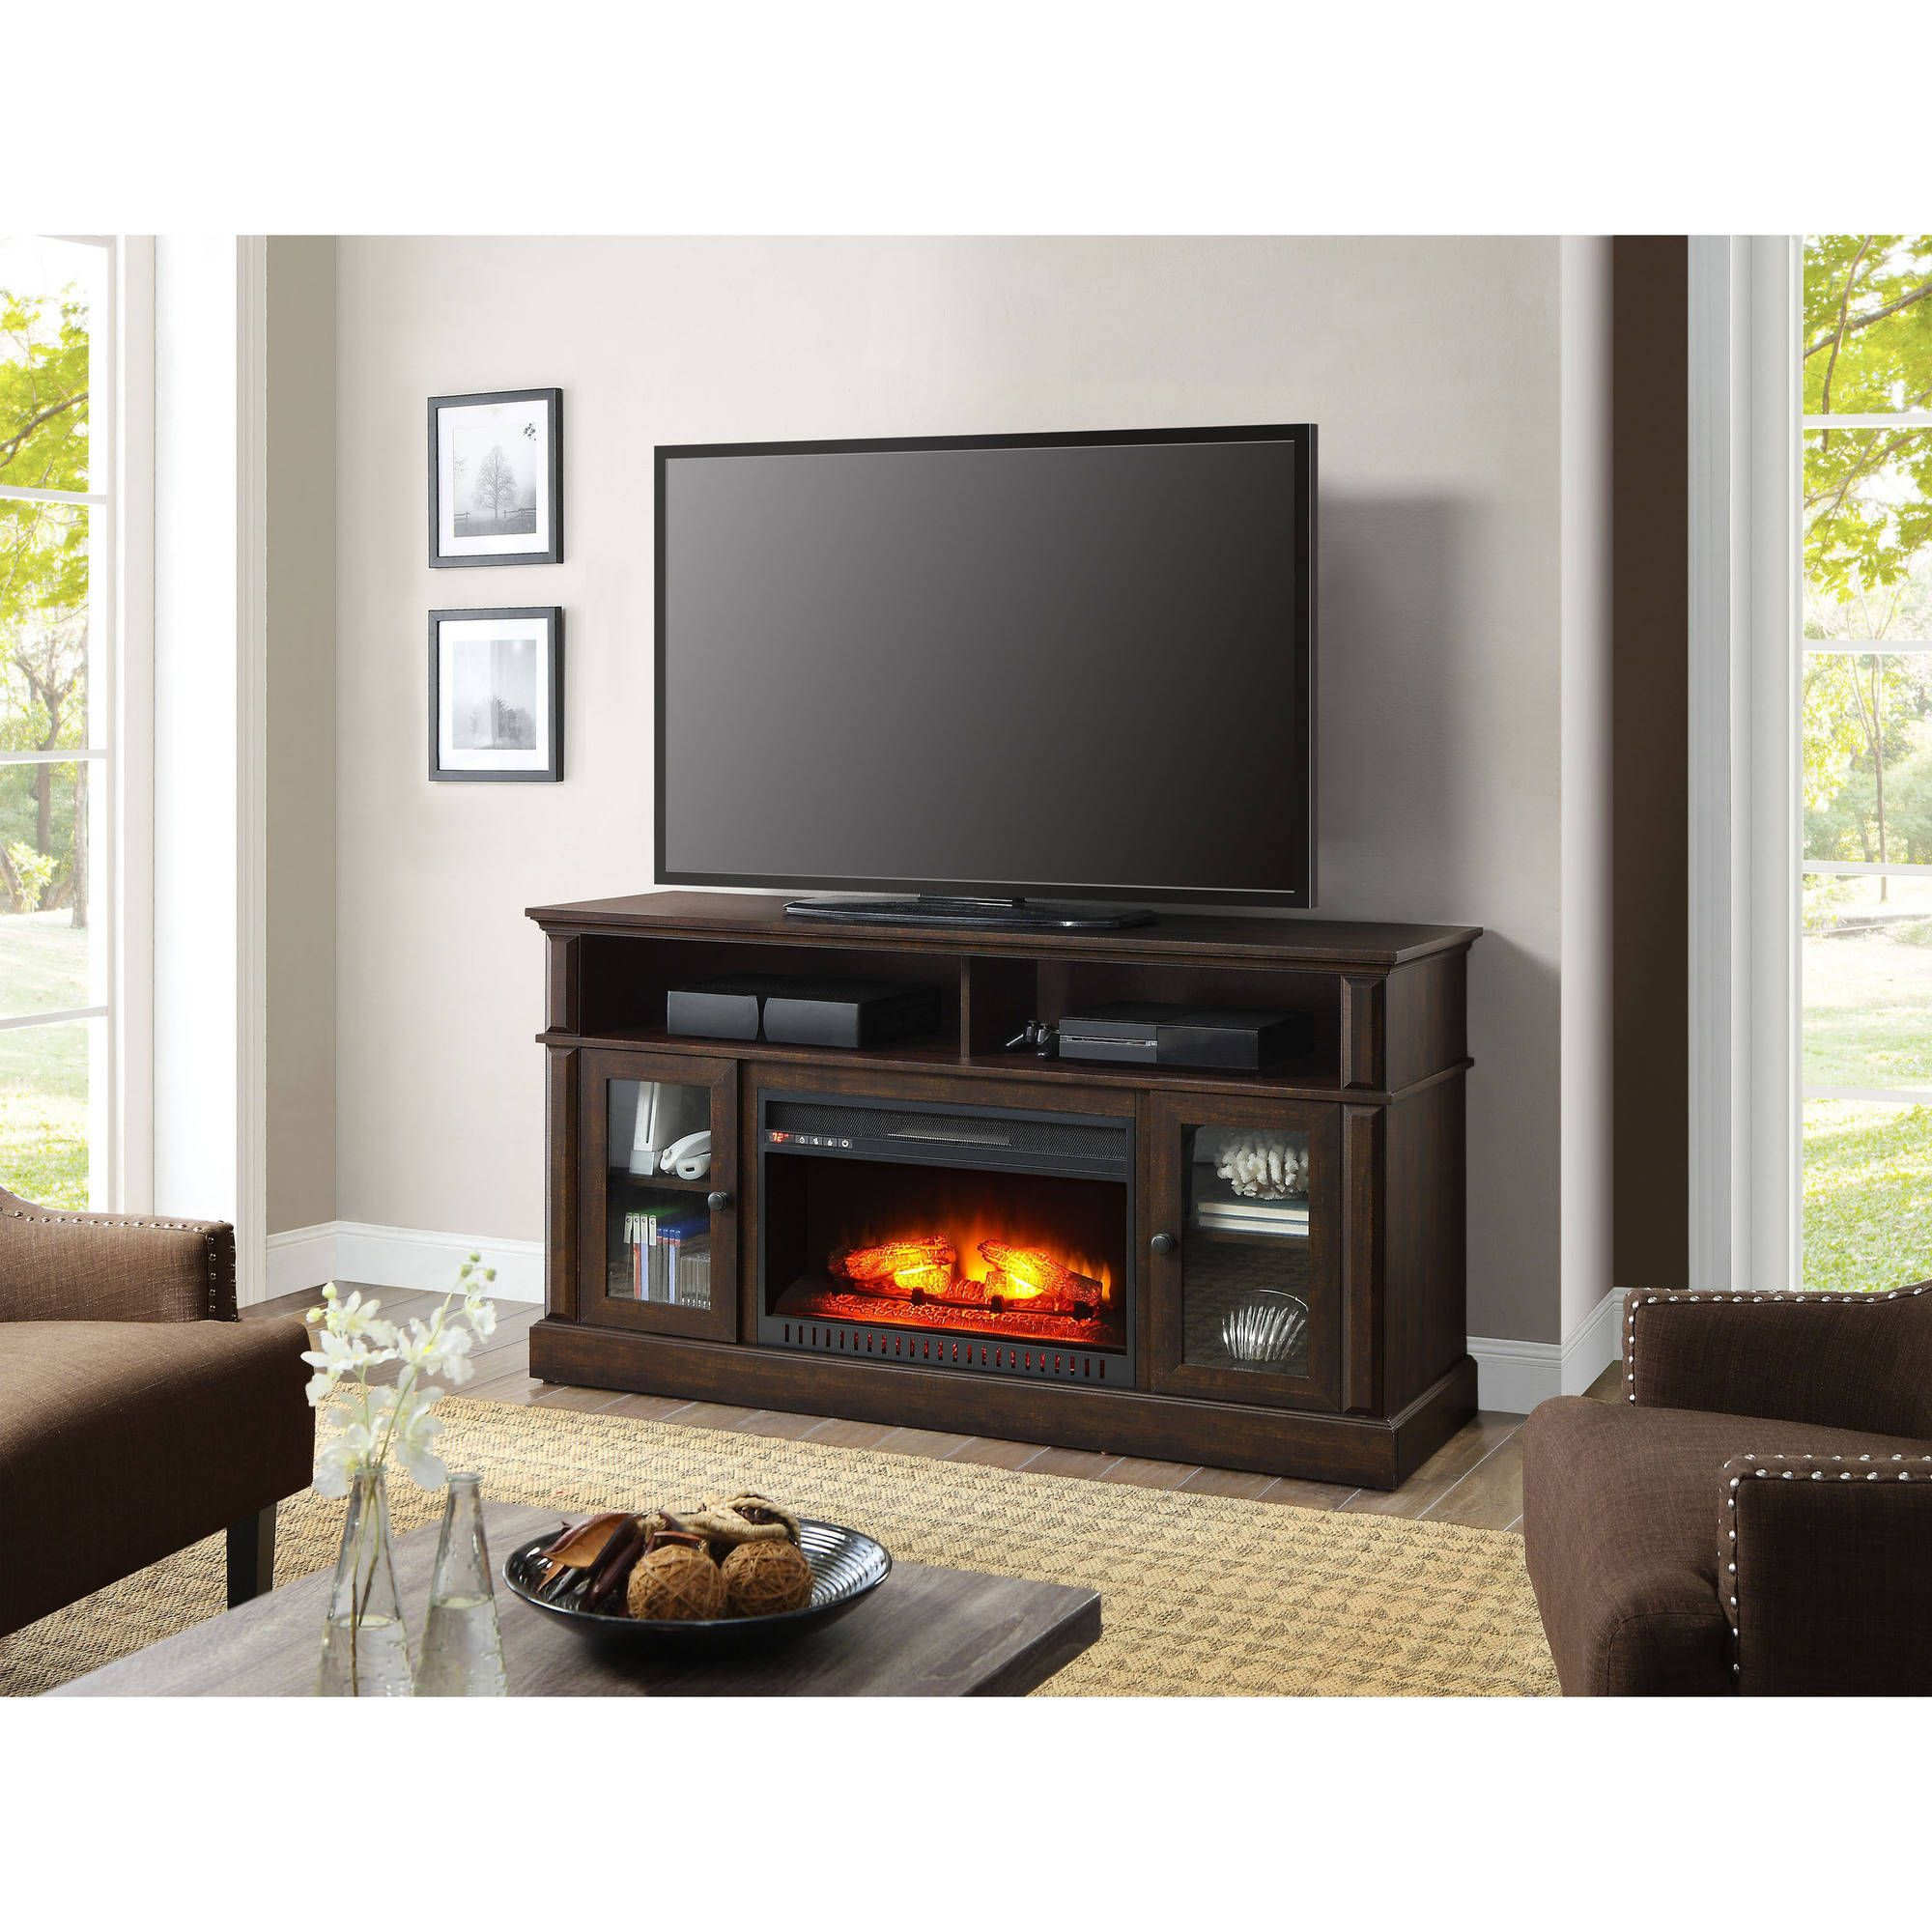 Home Electric Fireplace Entertainment Center Fireplace Tv Stand Electric Fireplace Tv Stand